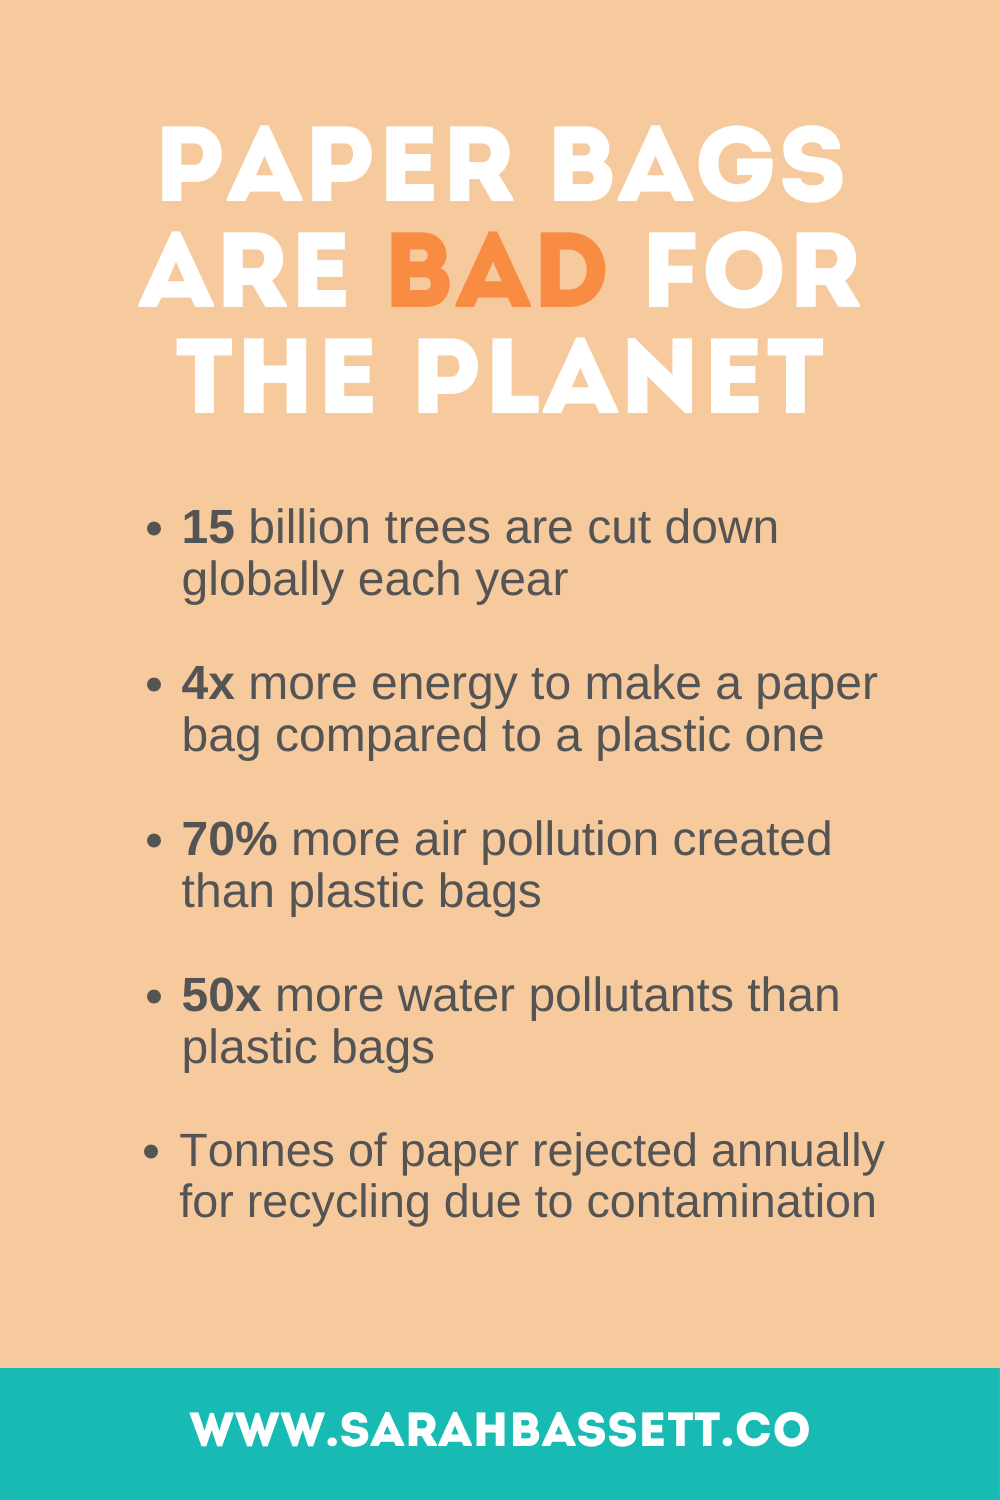 Eco-packaging paper bags are not environmentally-friendly